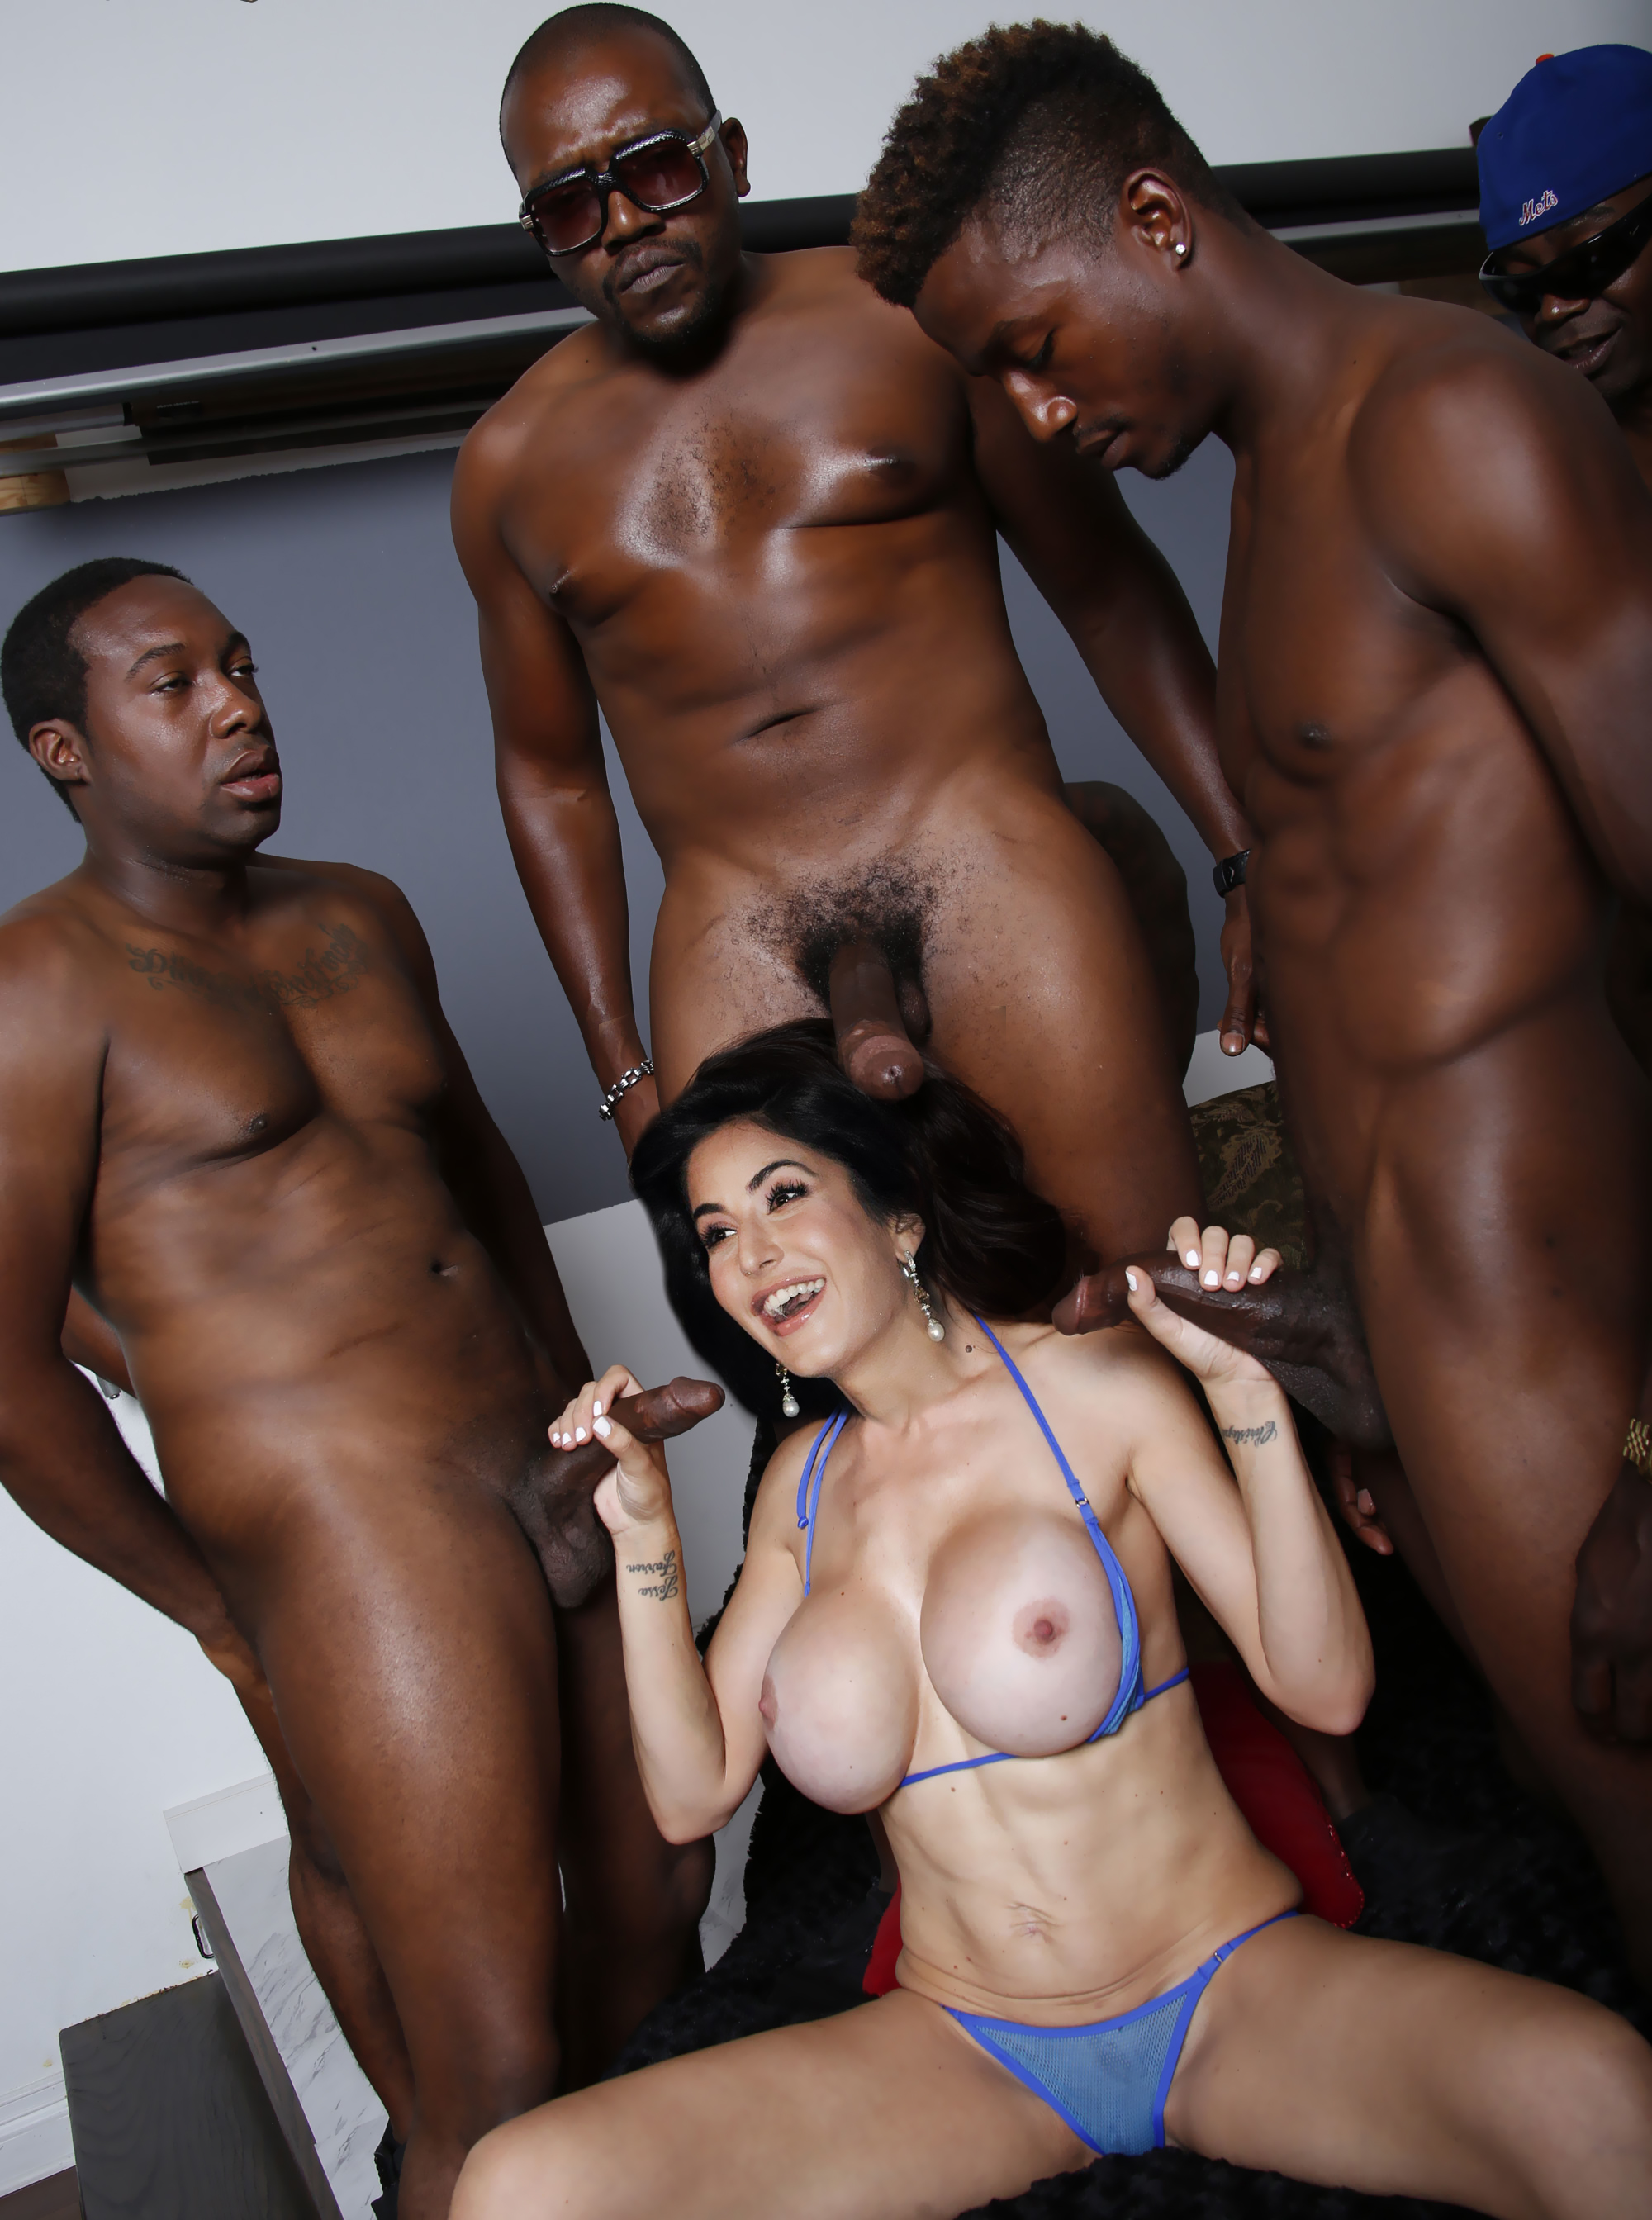 Japanese babe gangbanged by black men in front of her